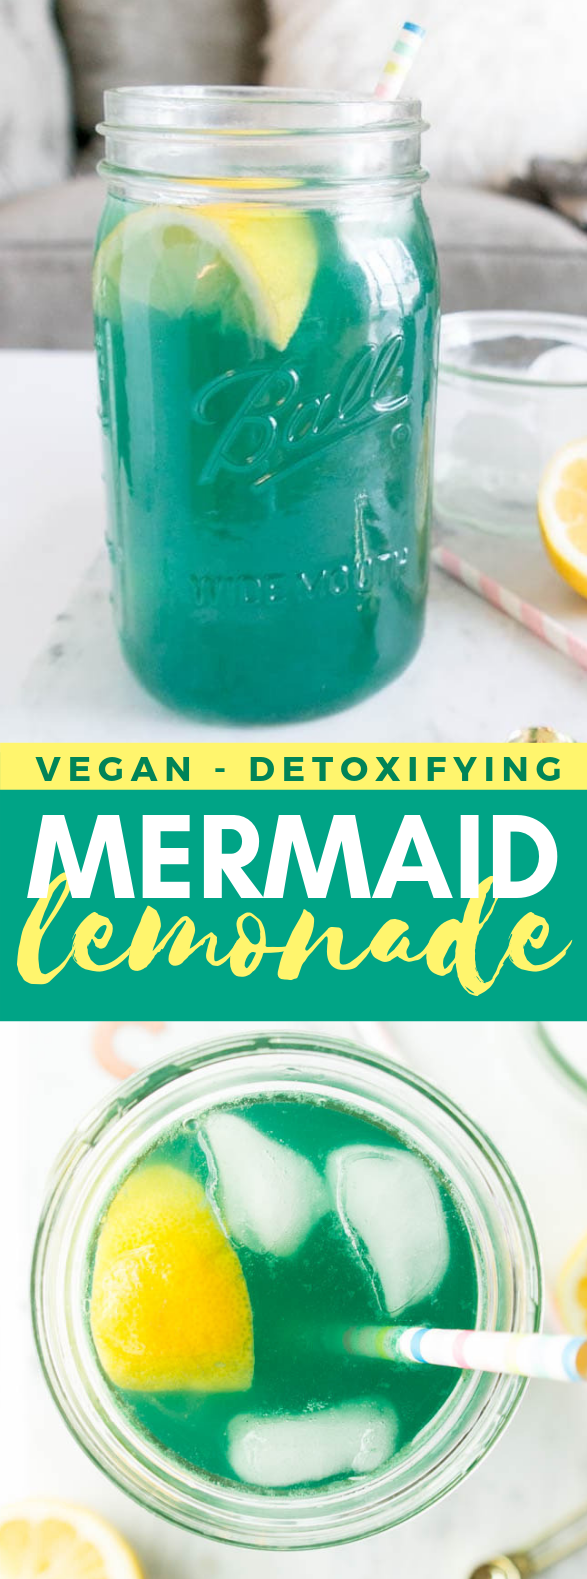 Mermaid Lemonade #drinks #spirulina